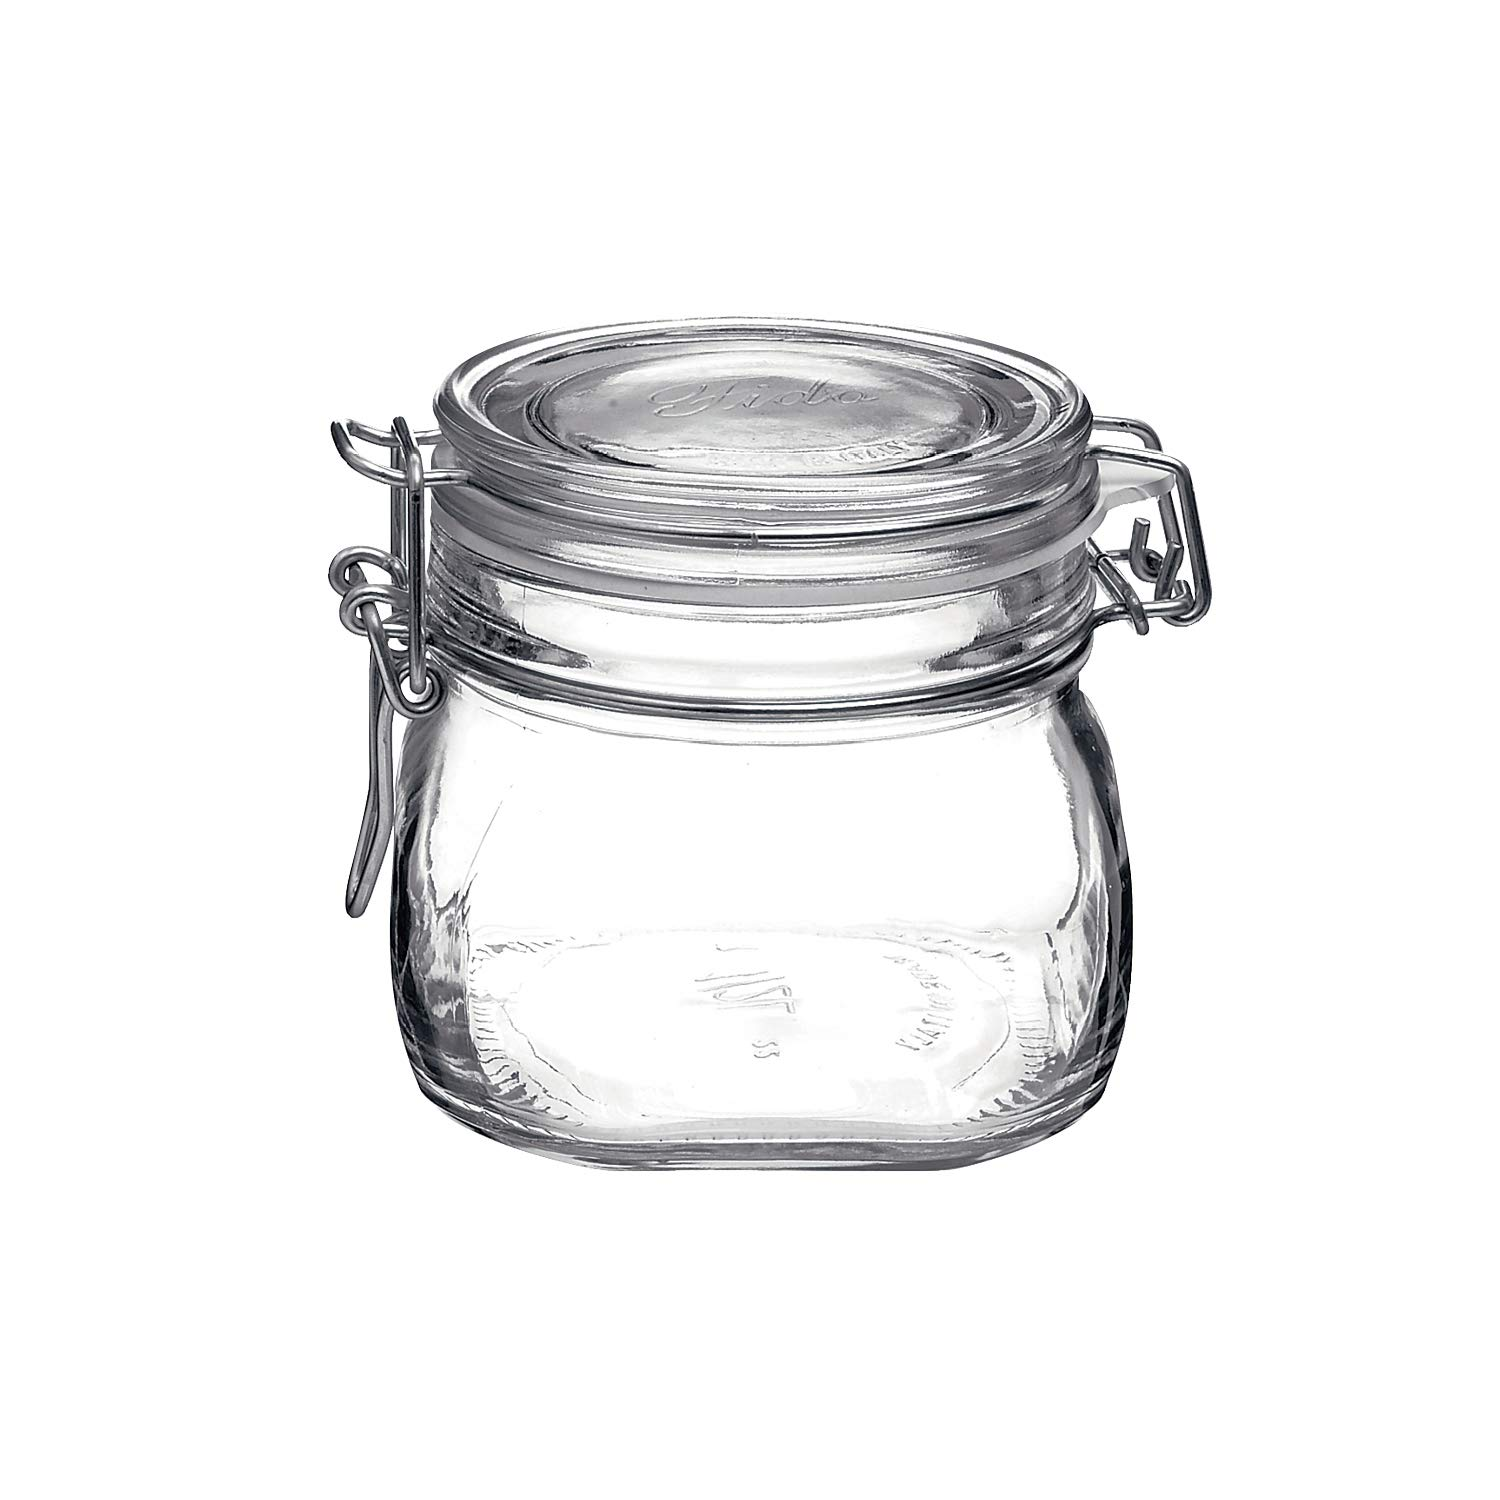 Bormioli Rocco Fido 17.5 Ounce Glass Storage Jars: Airtight Hinged Lid With Leak Proof Gasket, Wide Mouth Food Container - For Zero Waste Air Tight Preserving Jam, Spices, Coffee, Sugar & Herbs